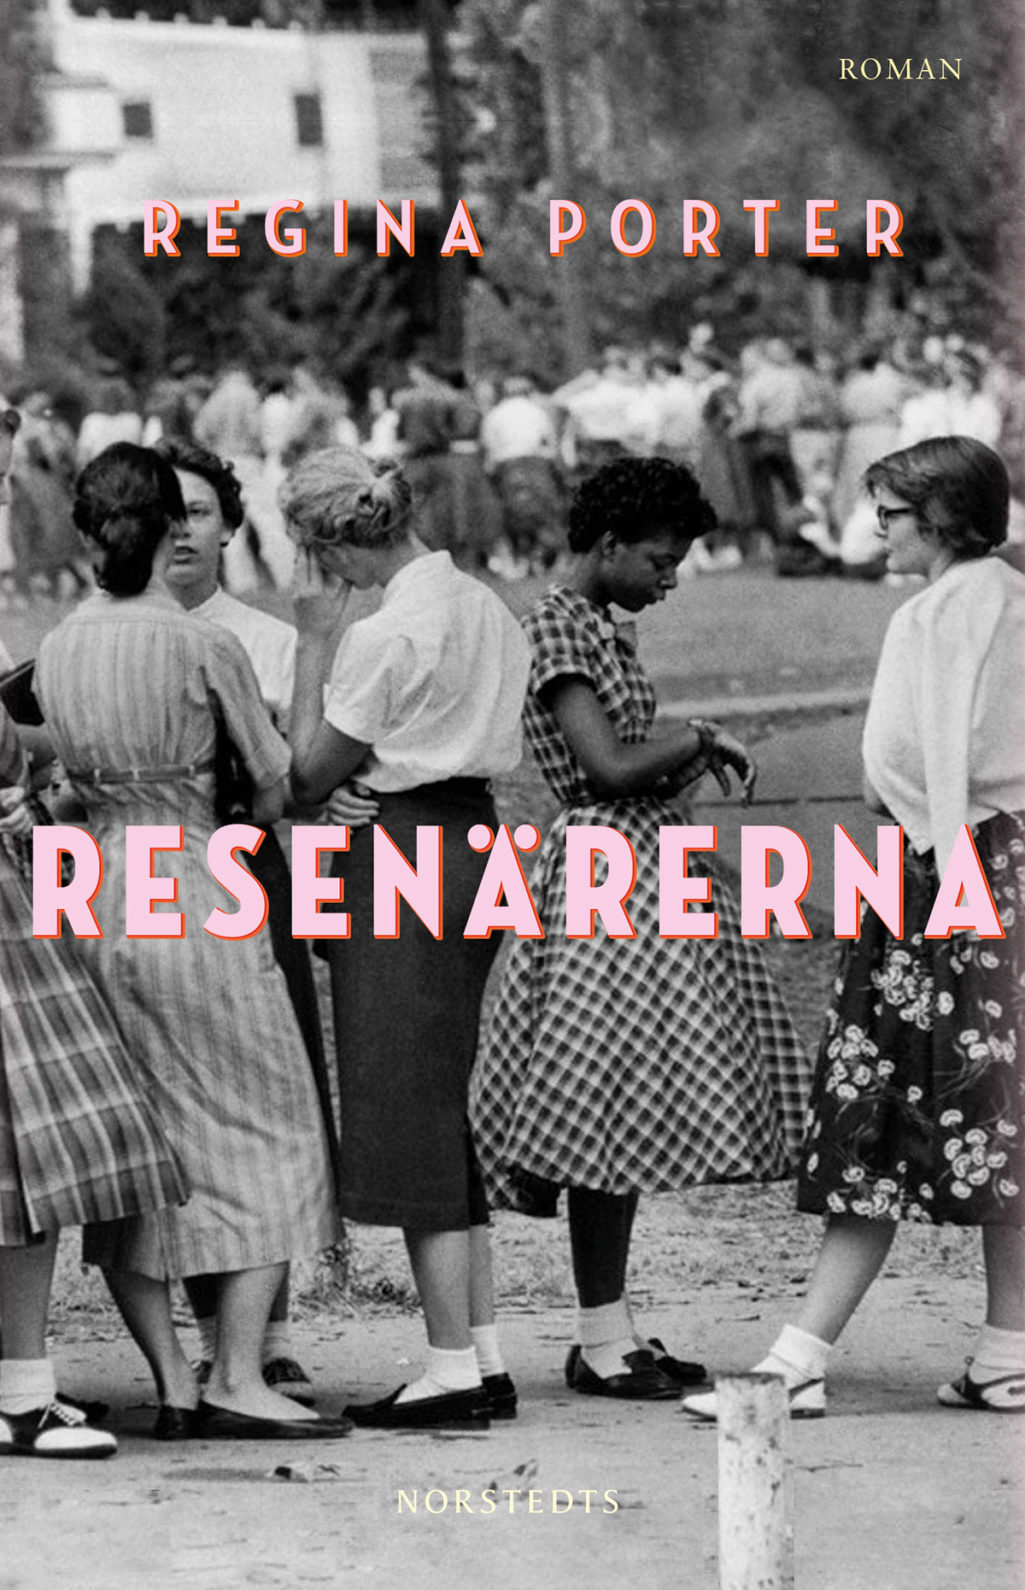 porter-regina-resenarerna-rescension